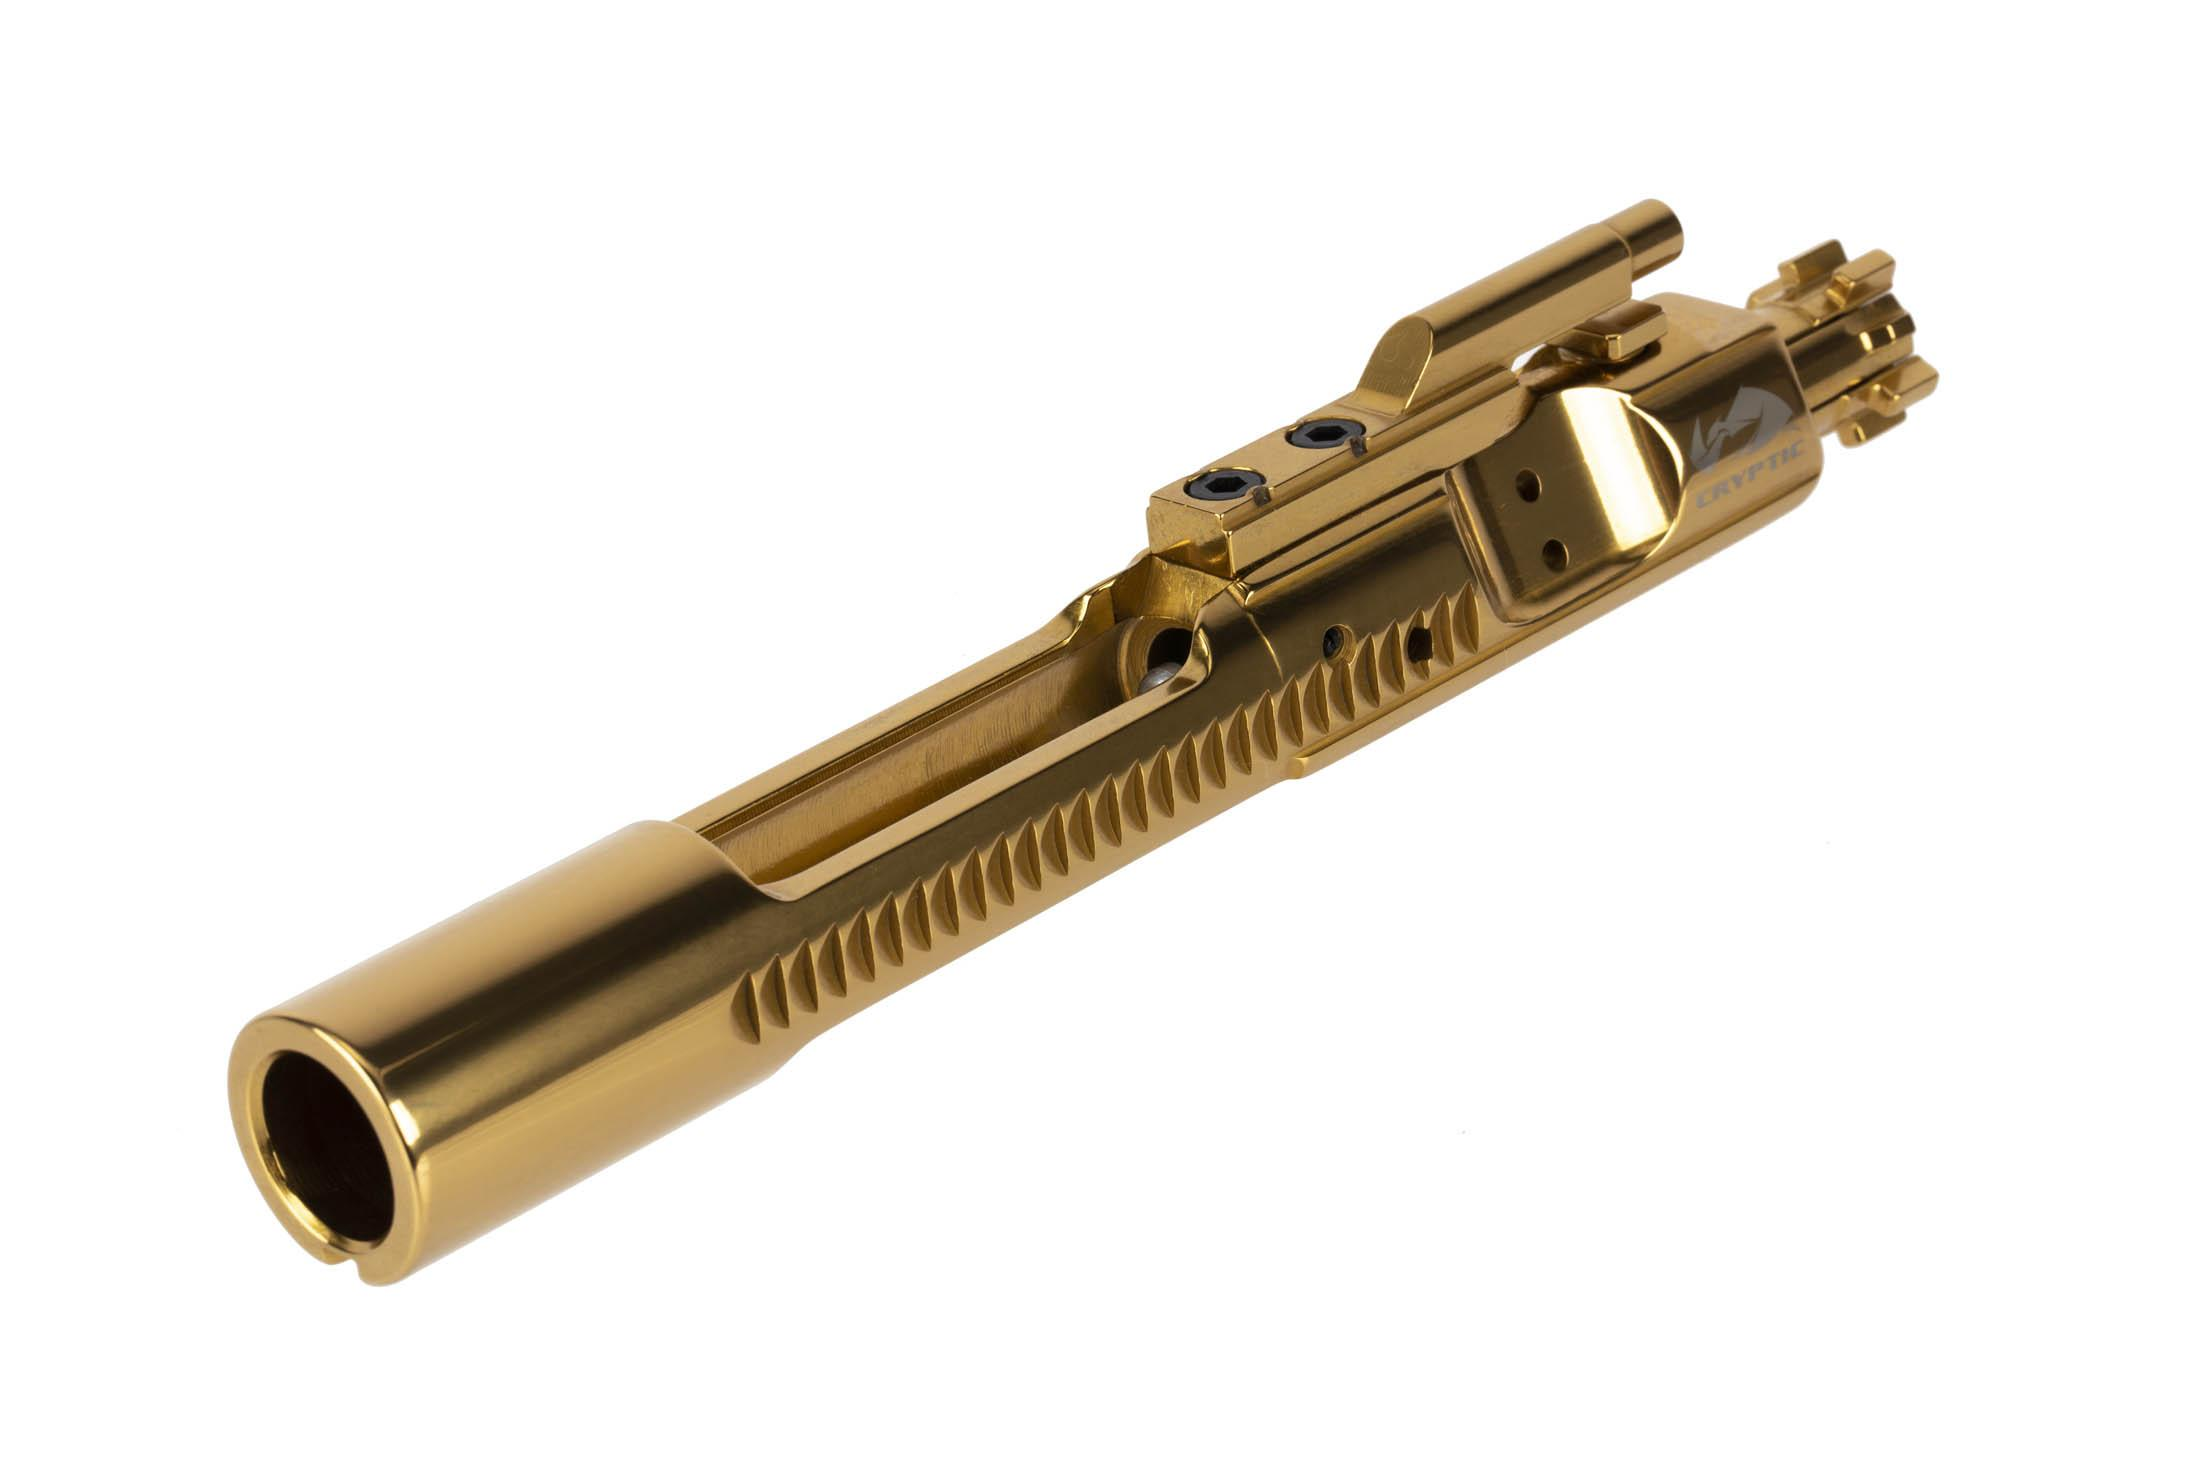 Cryptic Coatings AR-15 bolt carrier group for 6.8 SPC with Mystic Gold finish features a full M16 profile tail